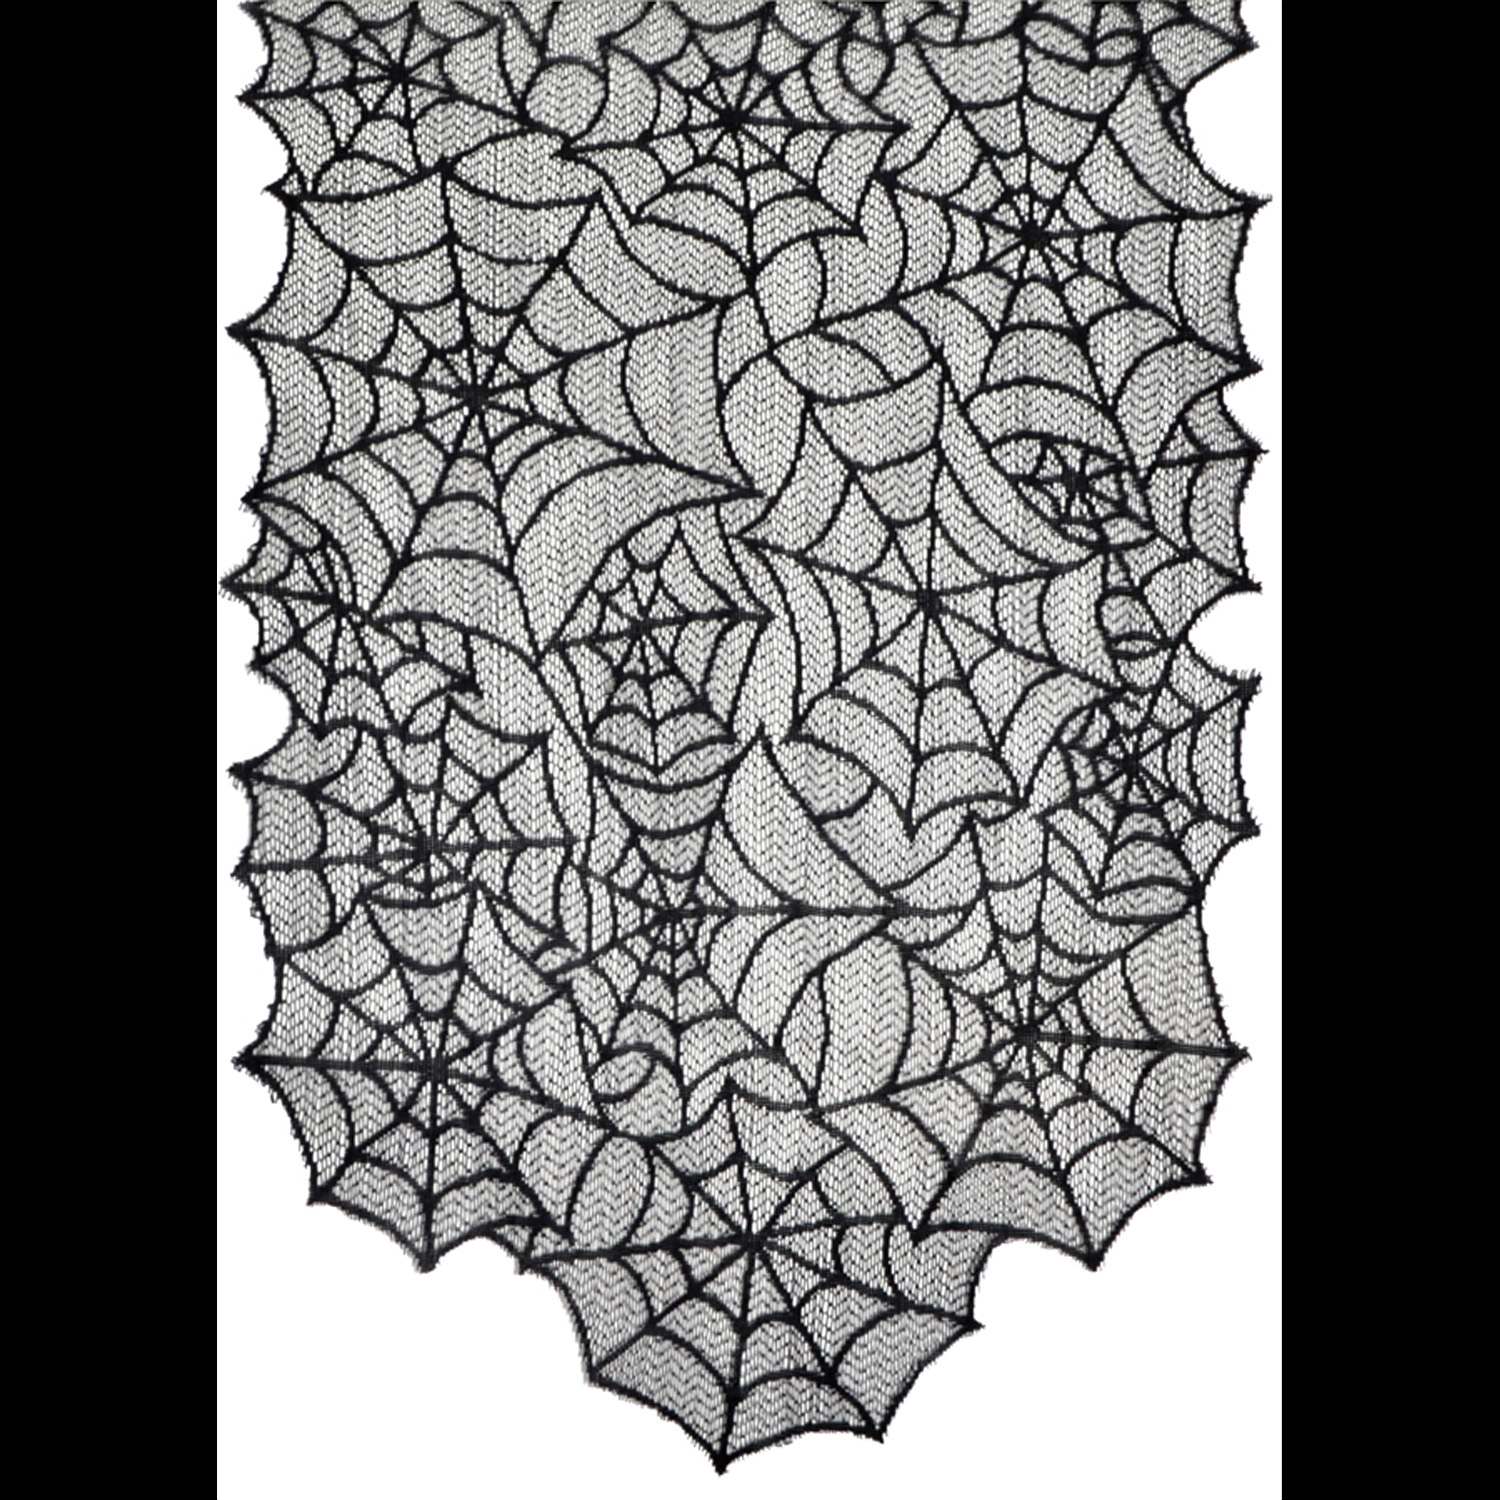 gothic black lace spider web table runner halloween decorations - Spider Web Halloween Decorations